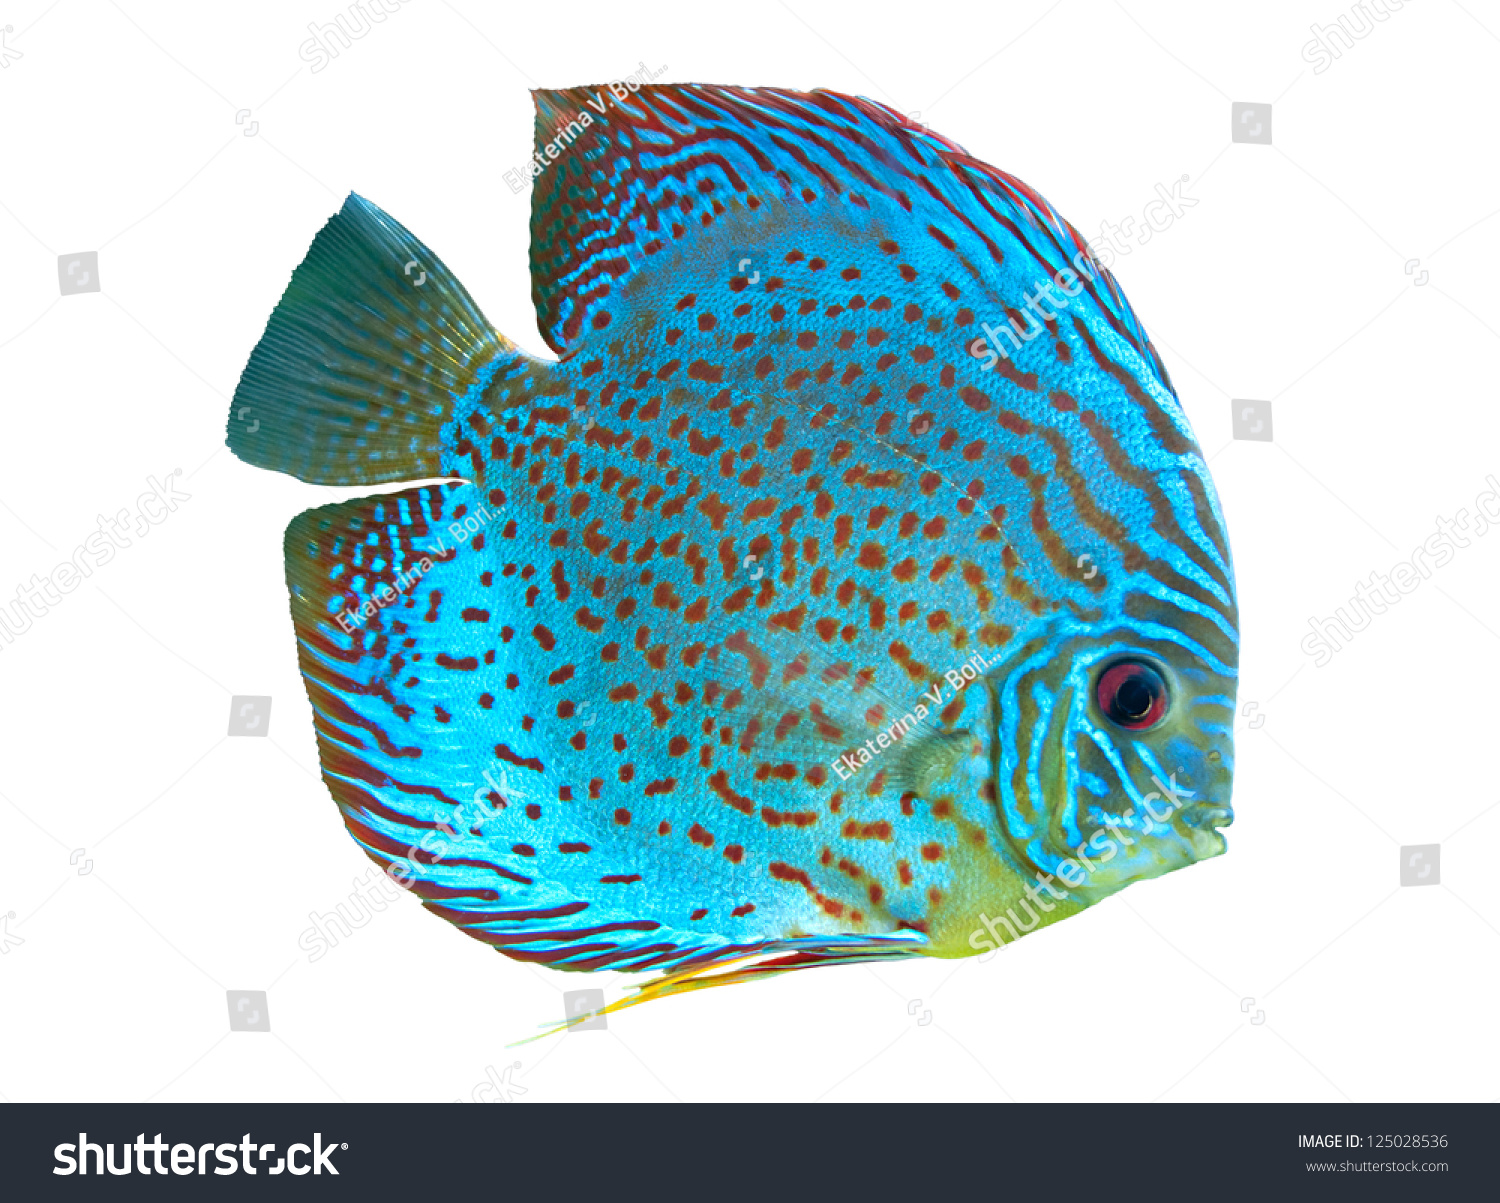 Spotted blue discus freshwater fish native stock photo for Image of fish